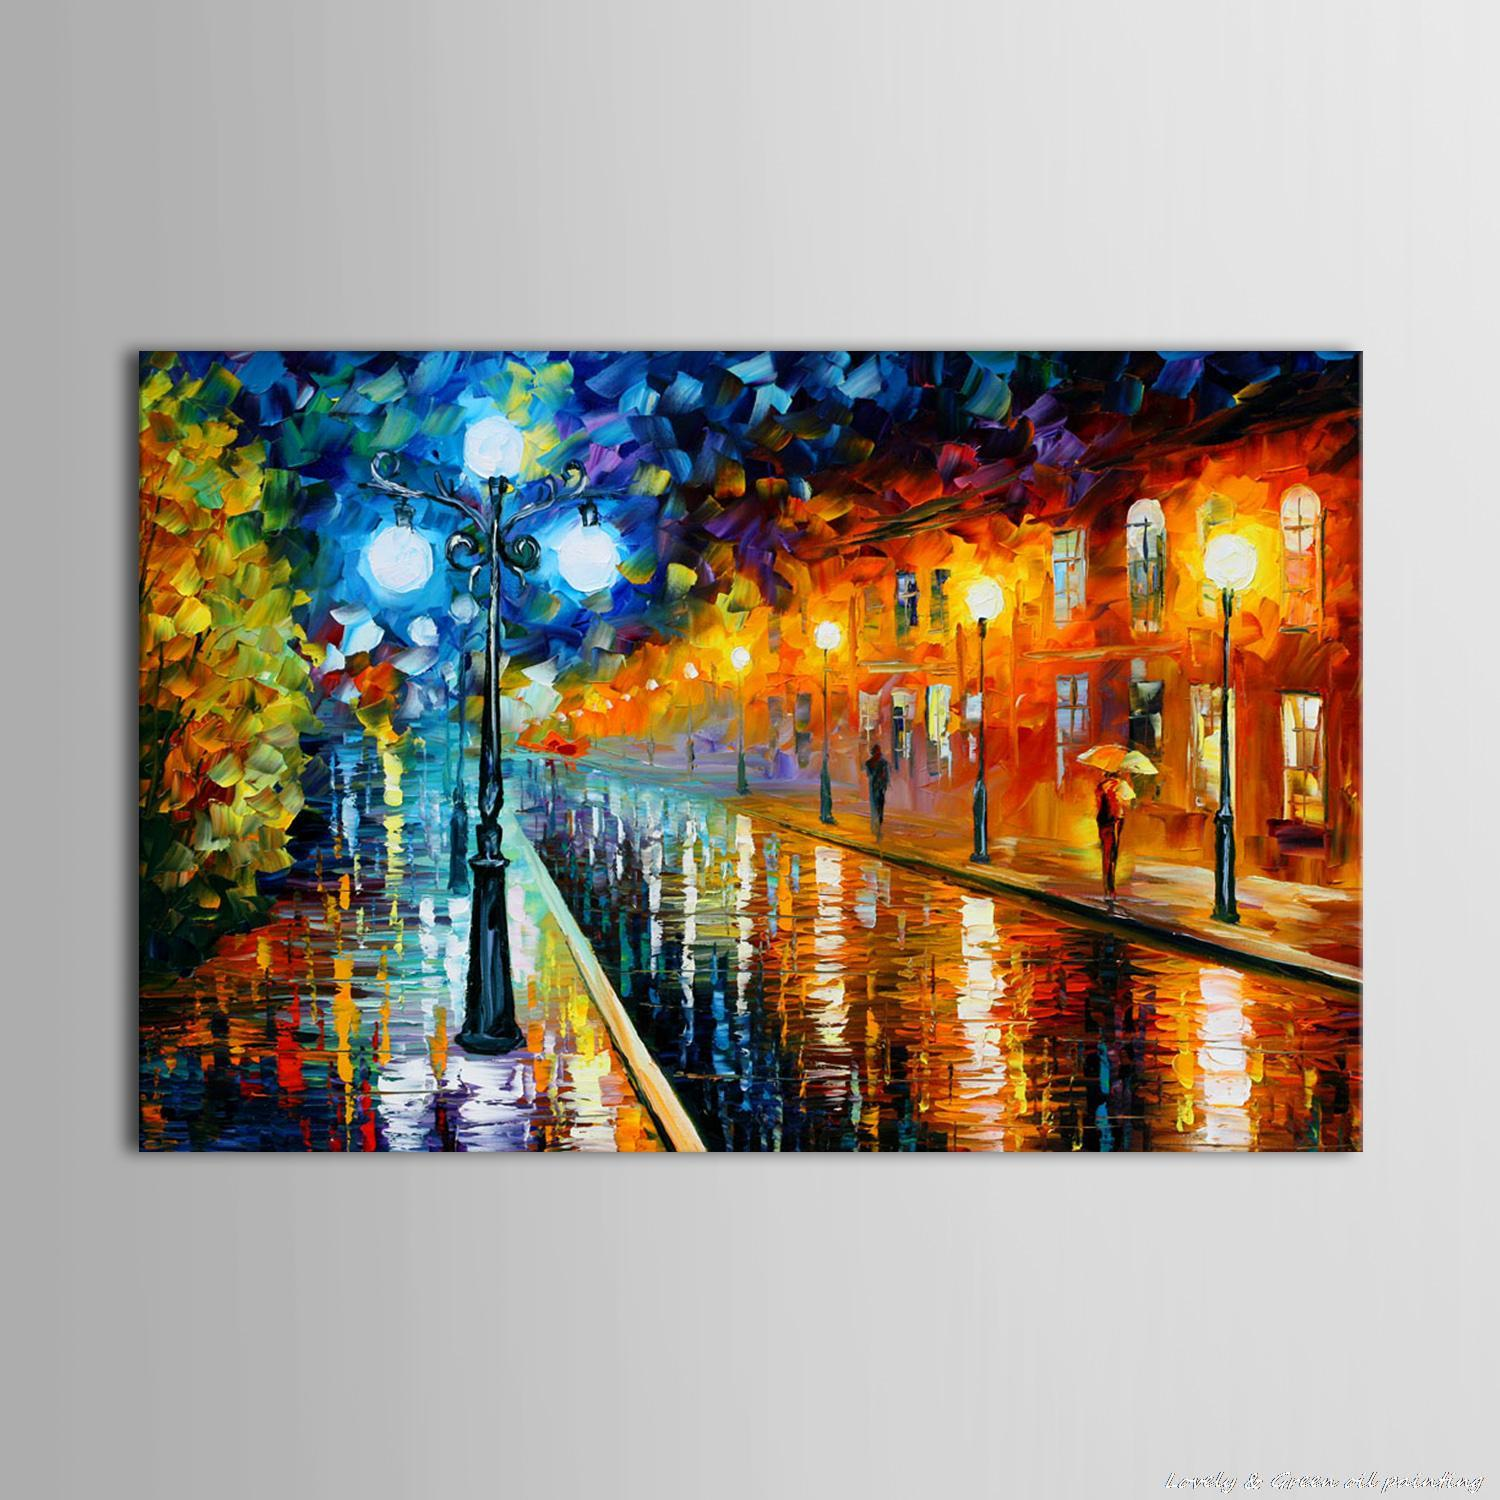 Living in the rain garden the living room is painted - 100 Hand Painted Free Shipping Colorful Oil Painting On Canvas Street After The Rain Wall Art Pictures Living Room Home Decor